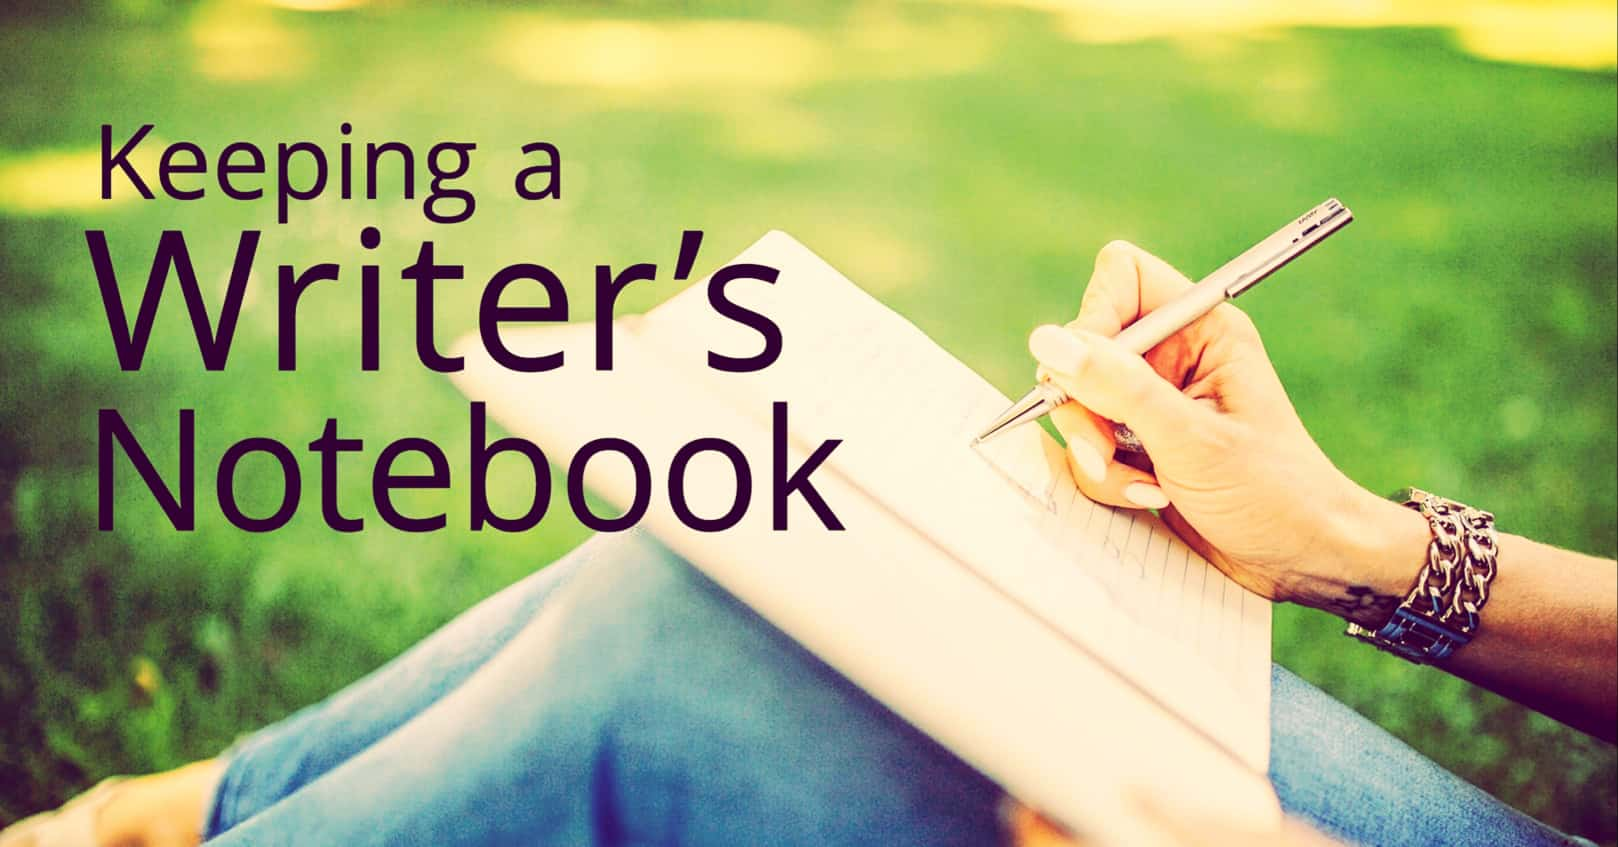 Keeping a Writer's Notebook